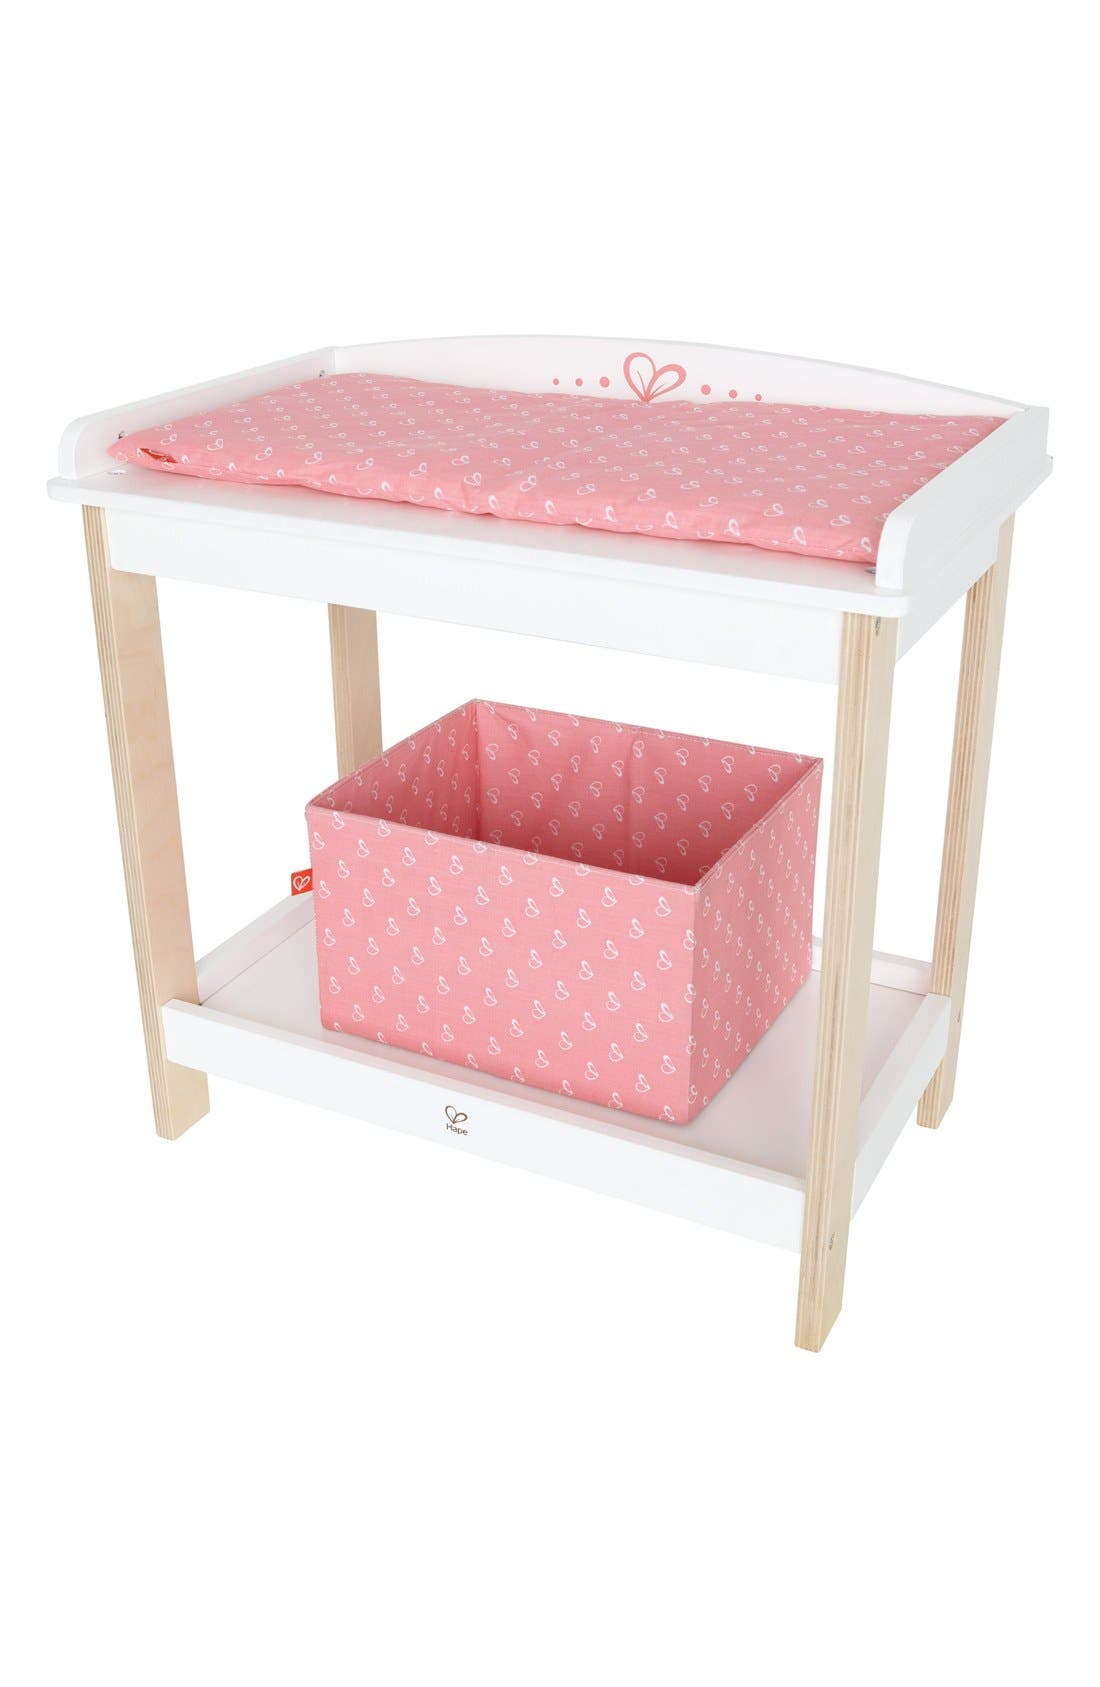 Main Image - Hape Toy Changing Table